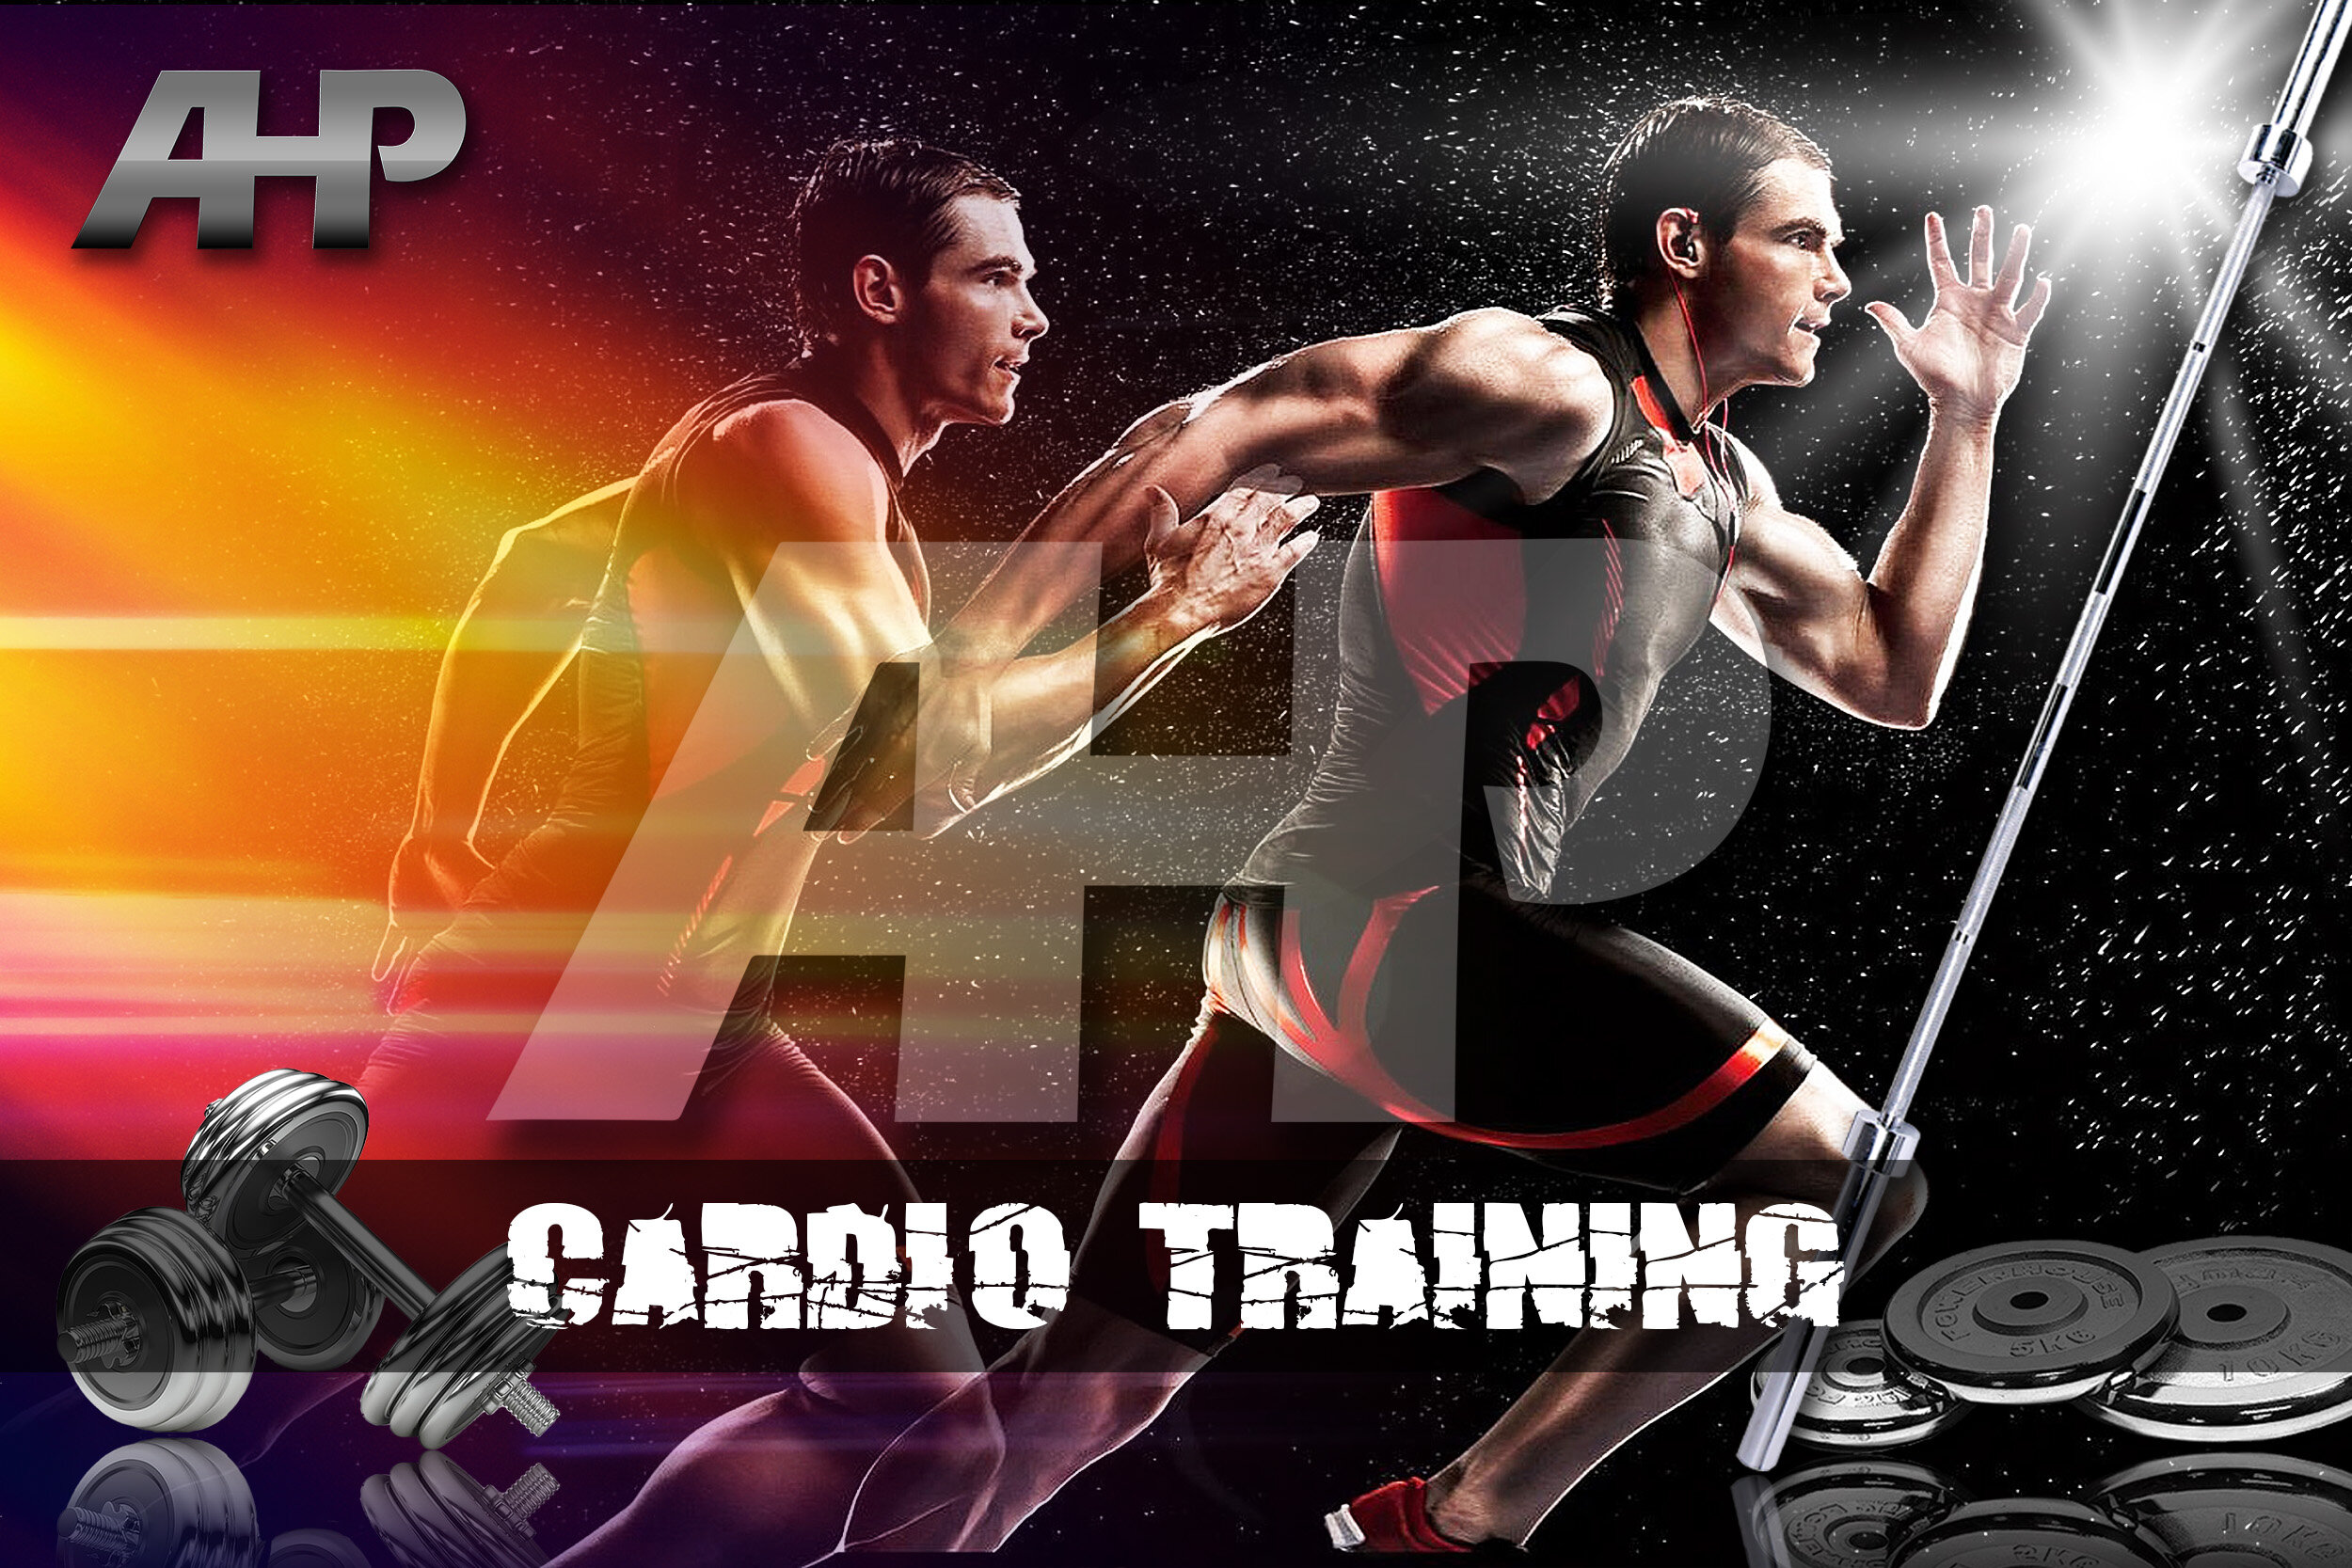 Cardio Training - Workout of the Day Thumbnail (Training Redefined - AHP).jpg